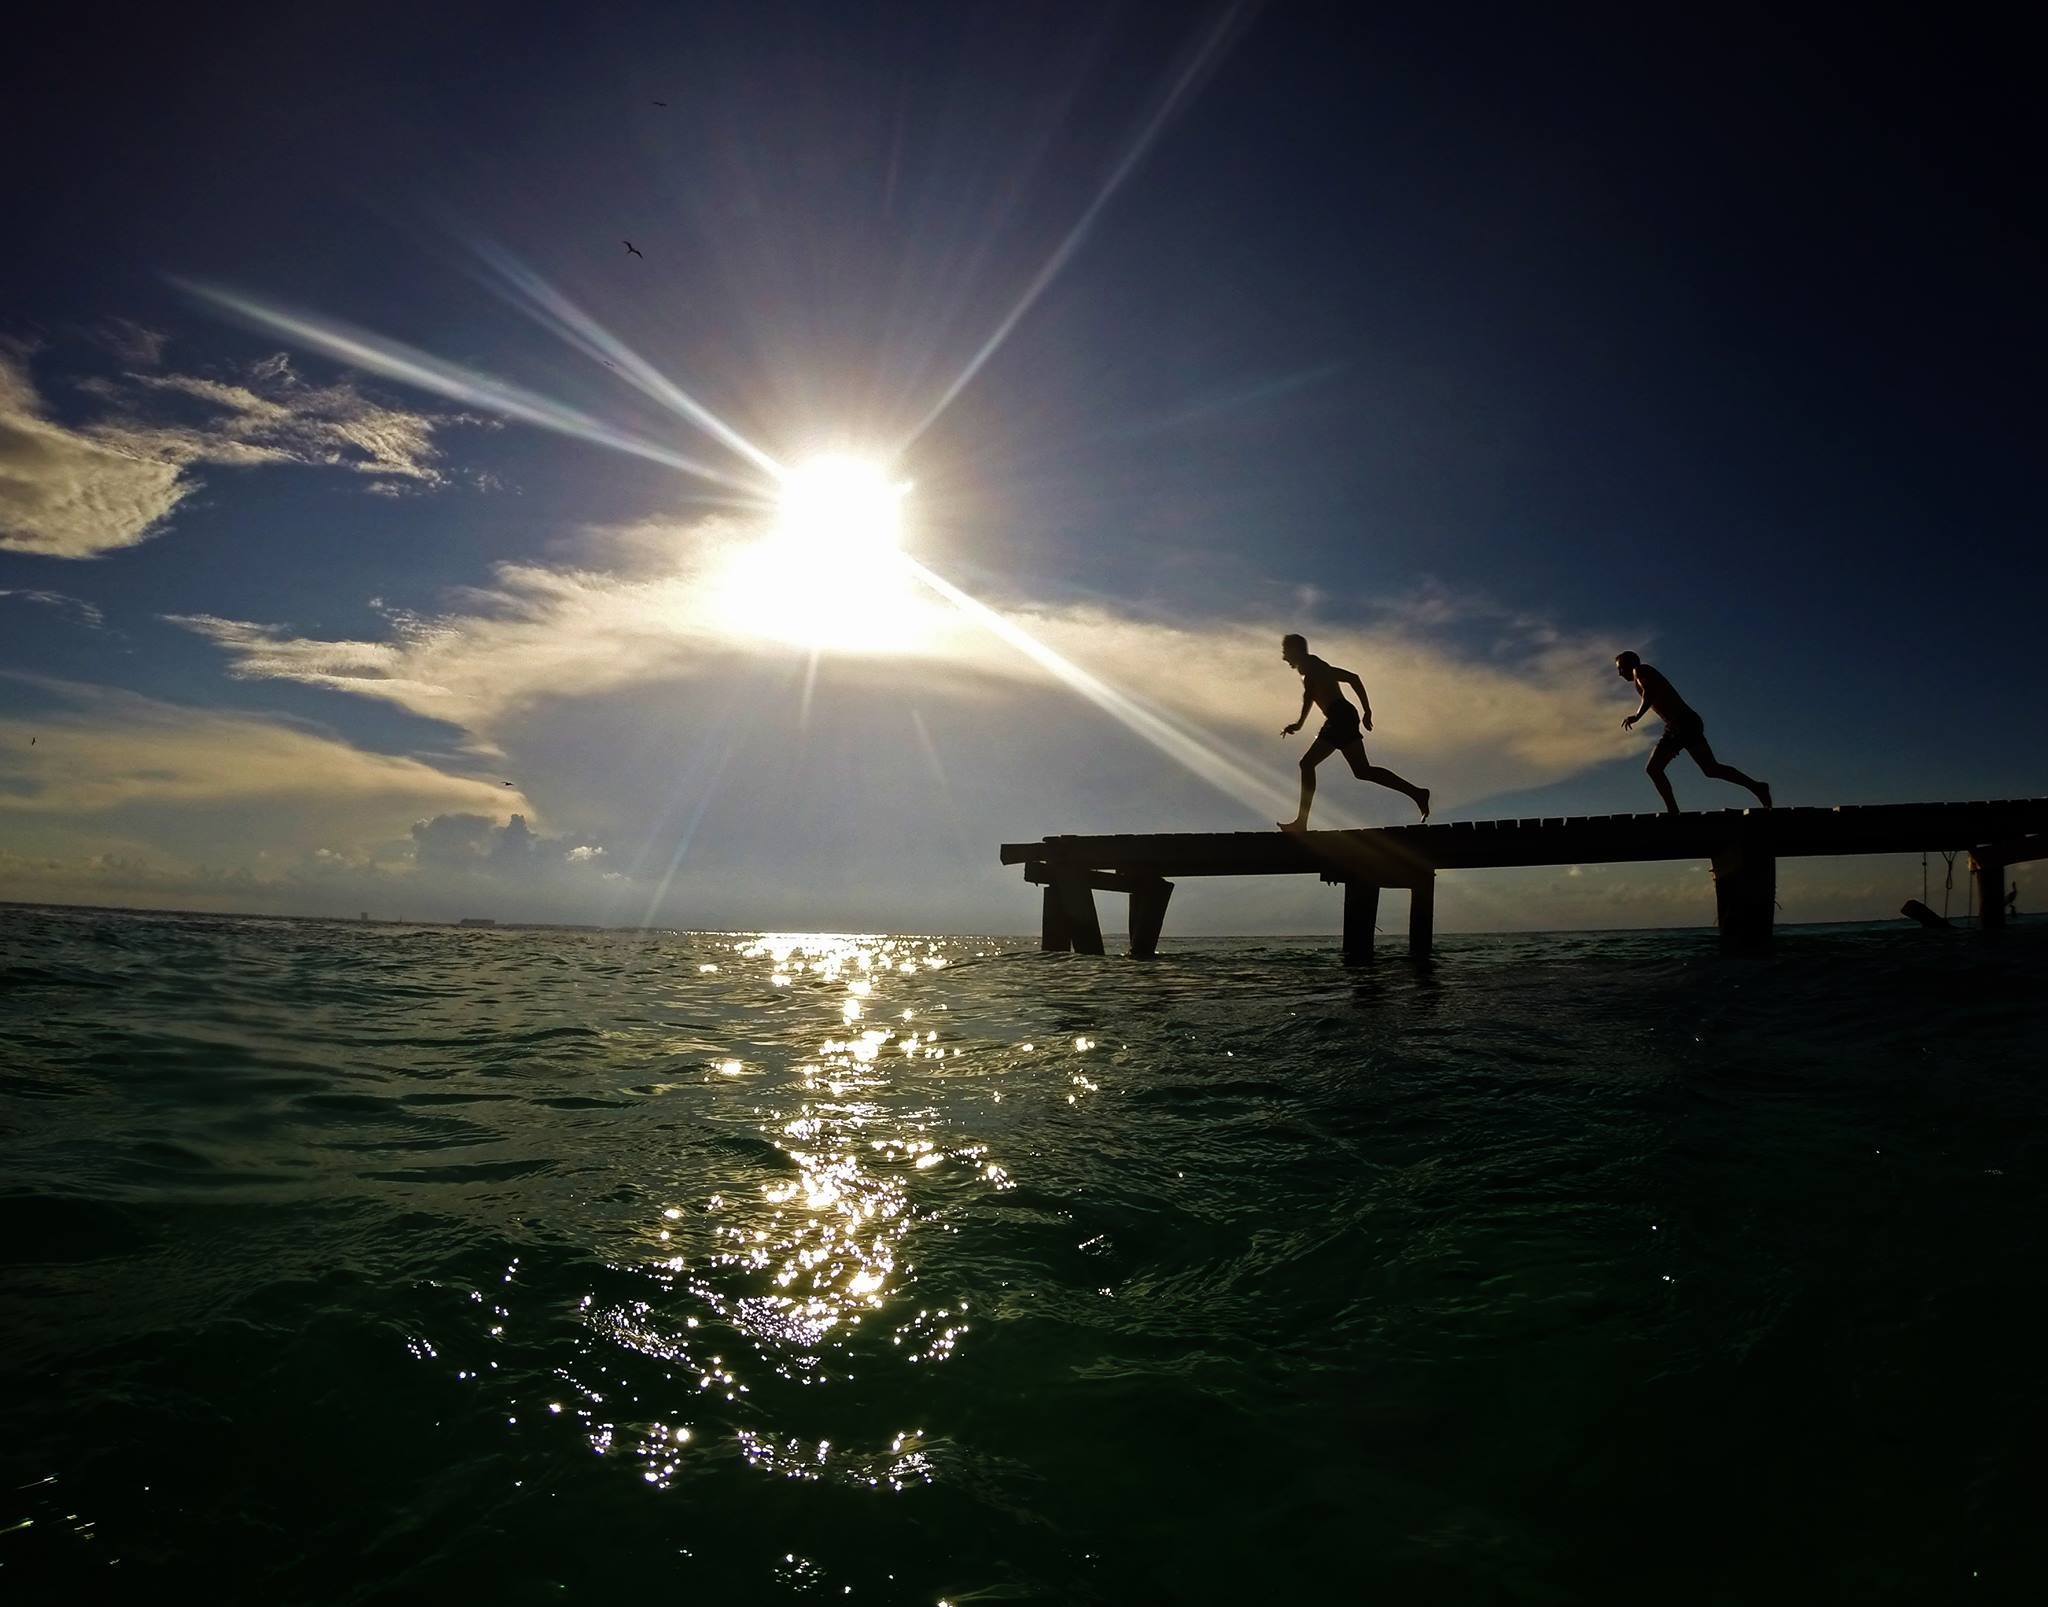 Is it worth backpacking Isla Mujeres? Two men run along a jetty ready to jump in the water